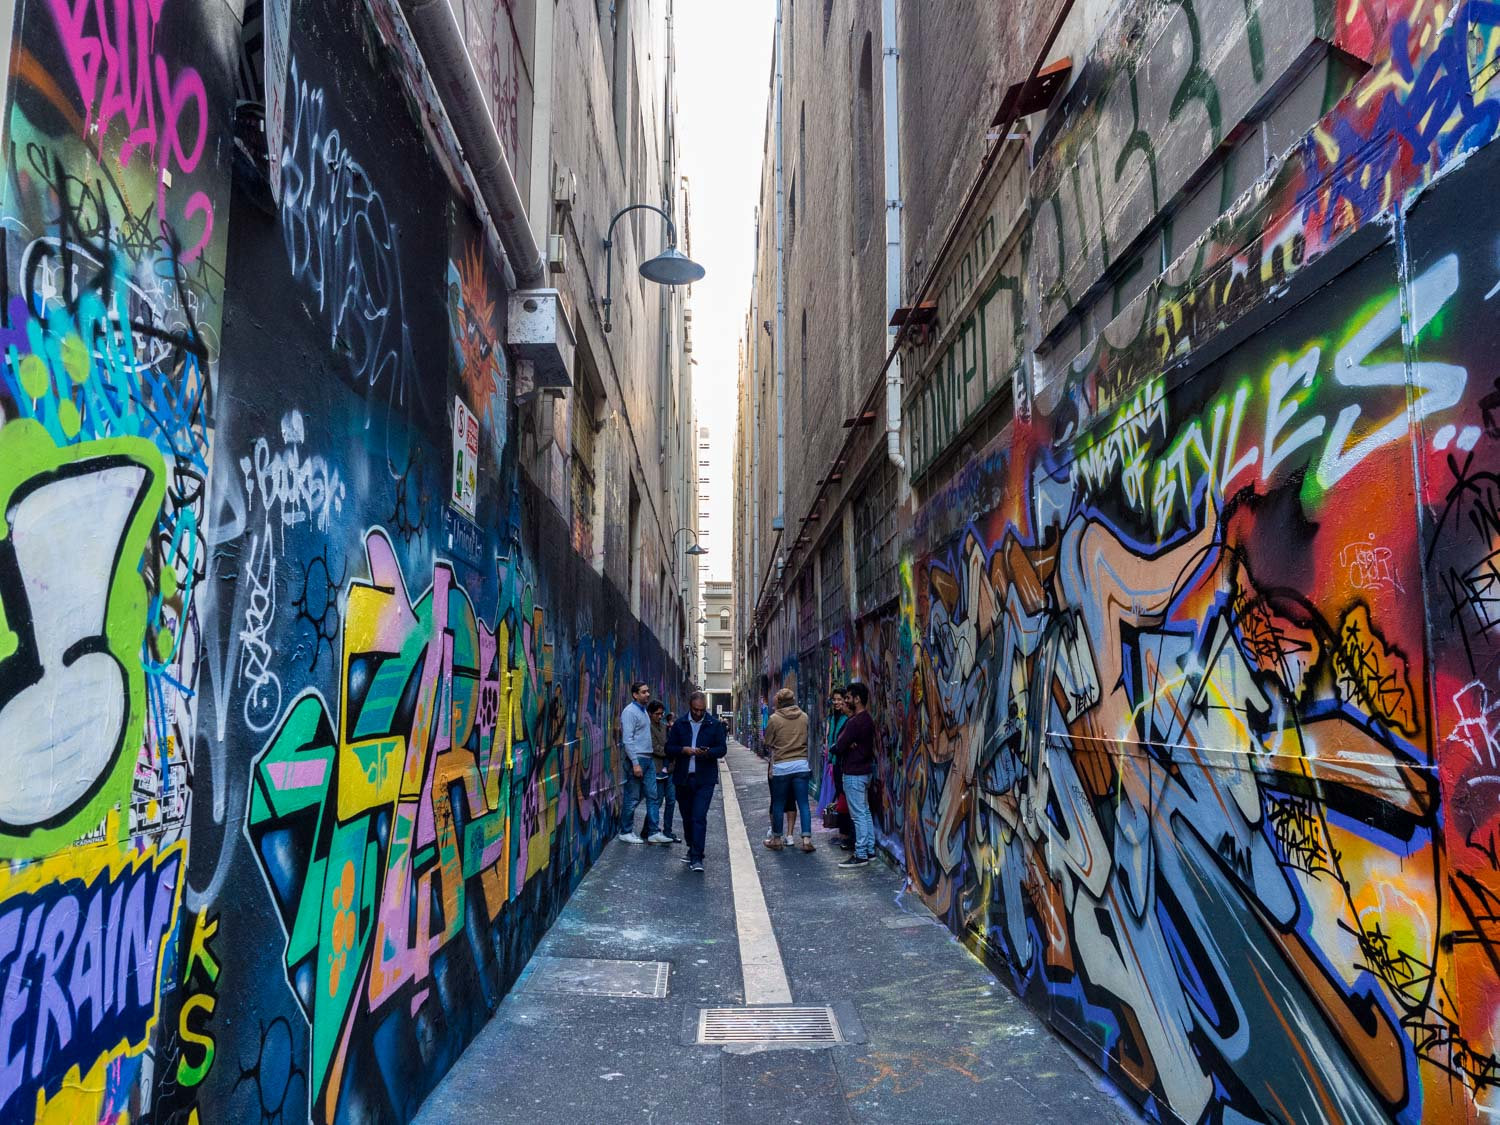 Street art on Union Lane, Melbourne. Taken with the OMD EM-10 and 12-40 f2.8 lens.